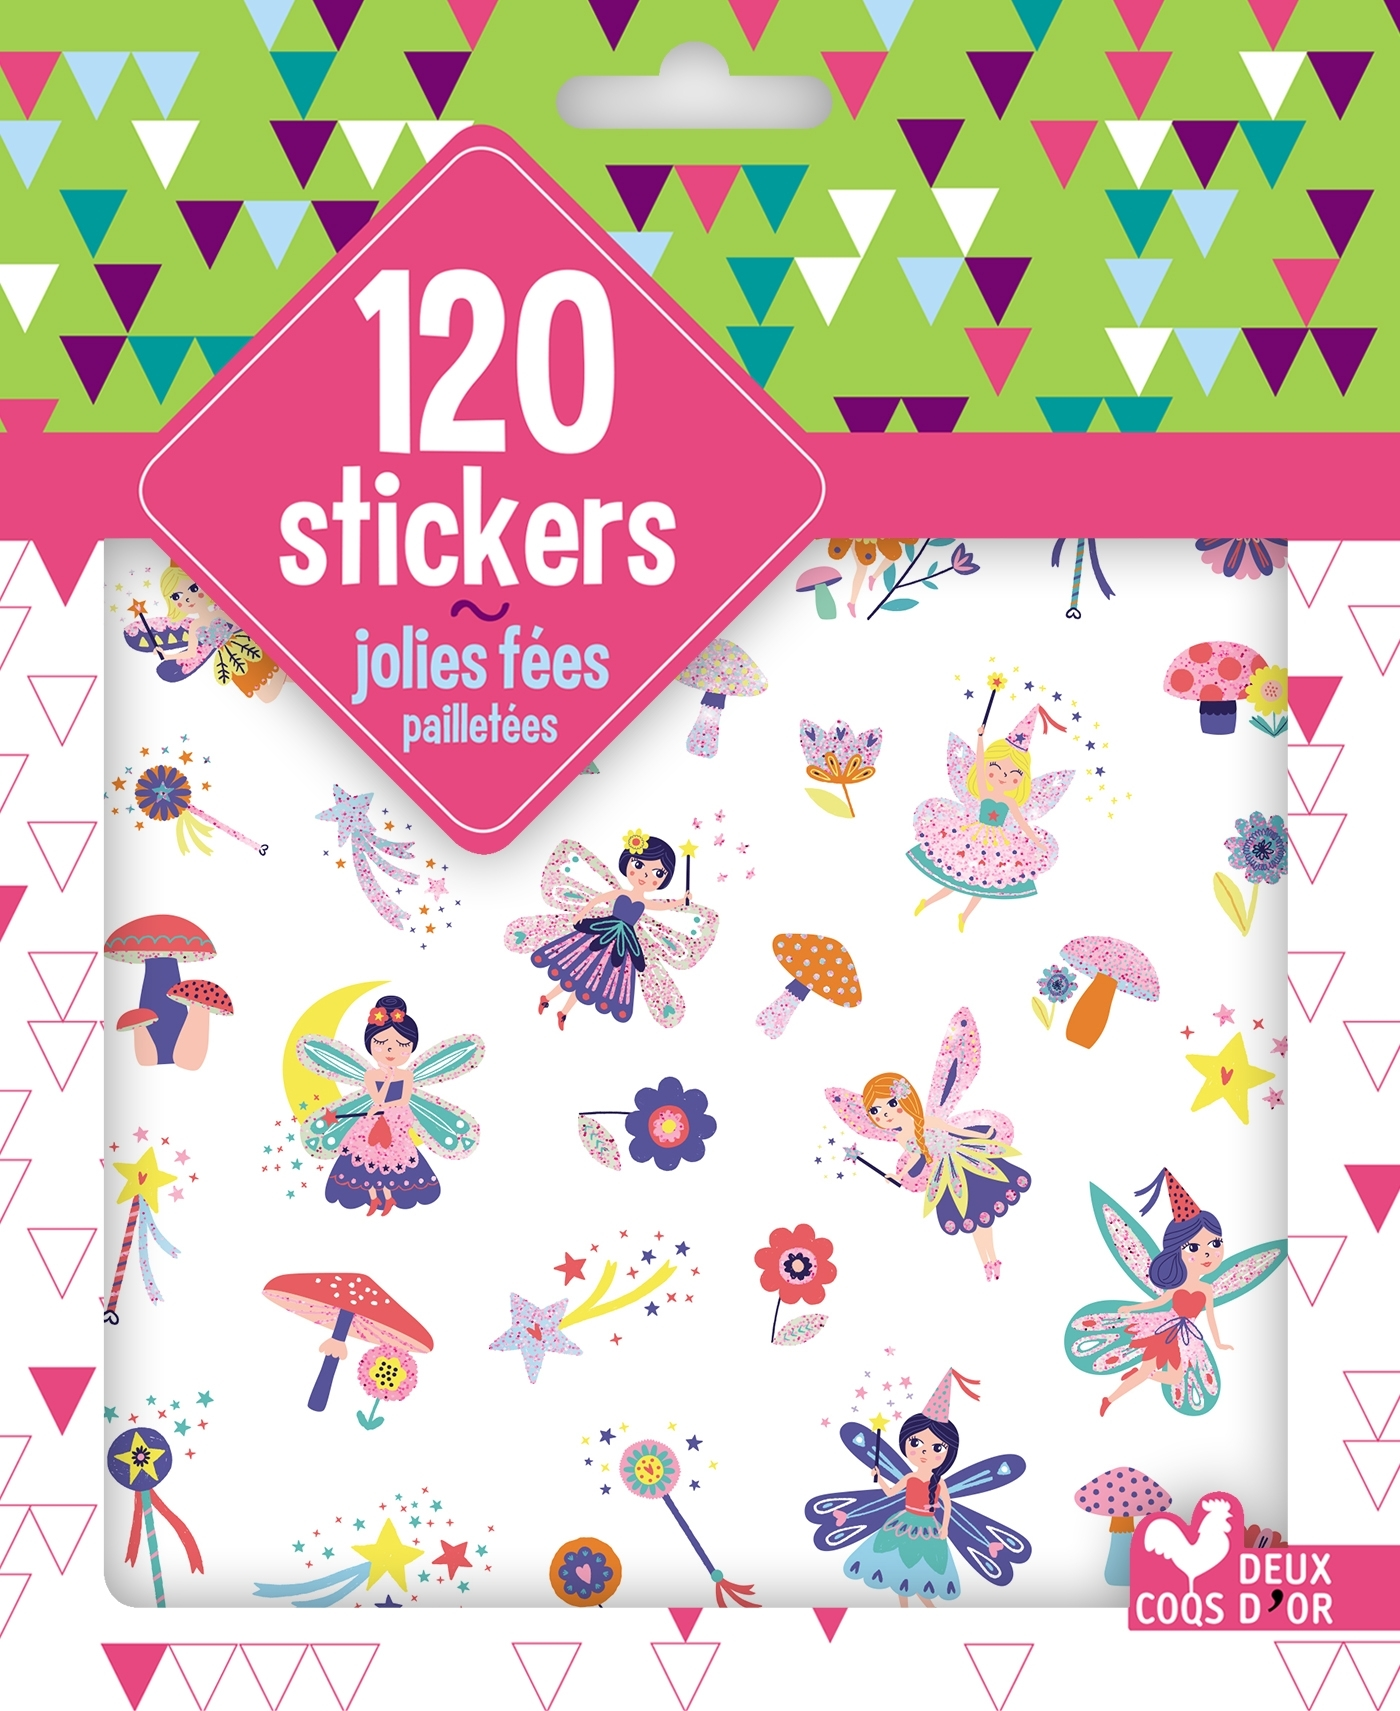 120 STICKERS FEES